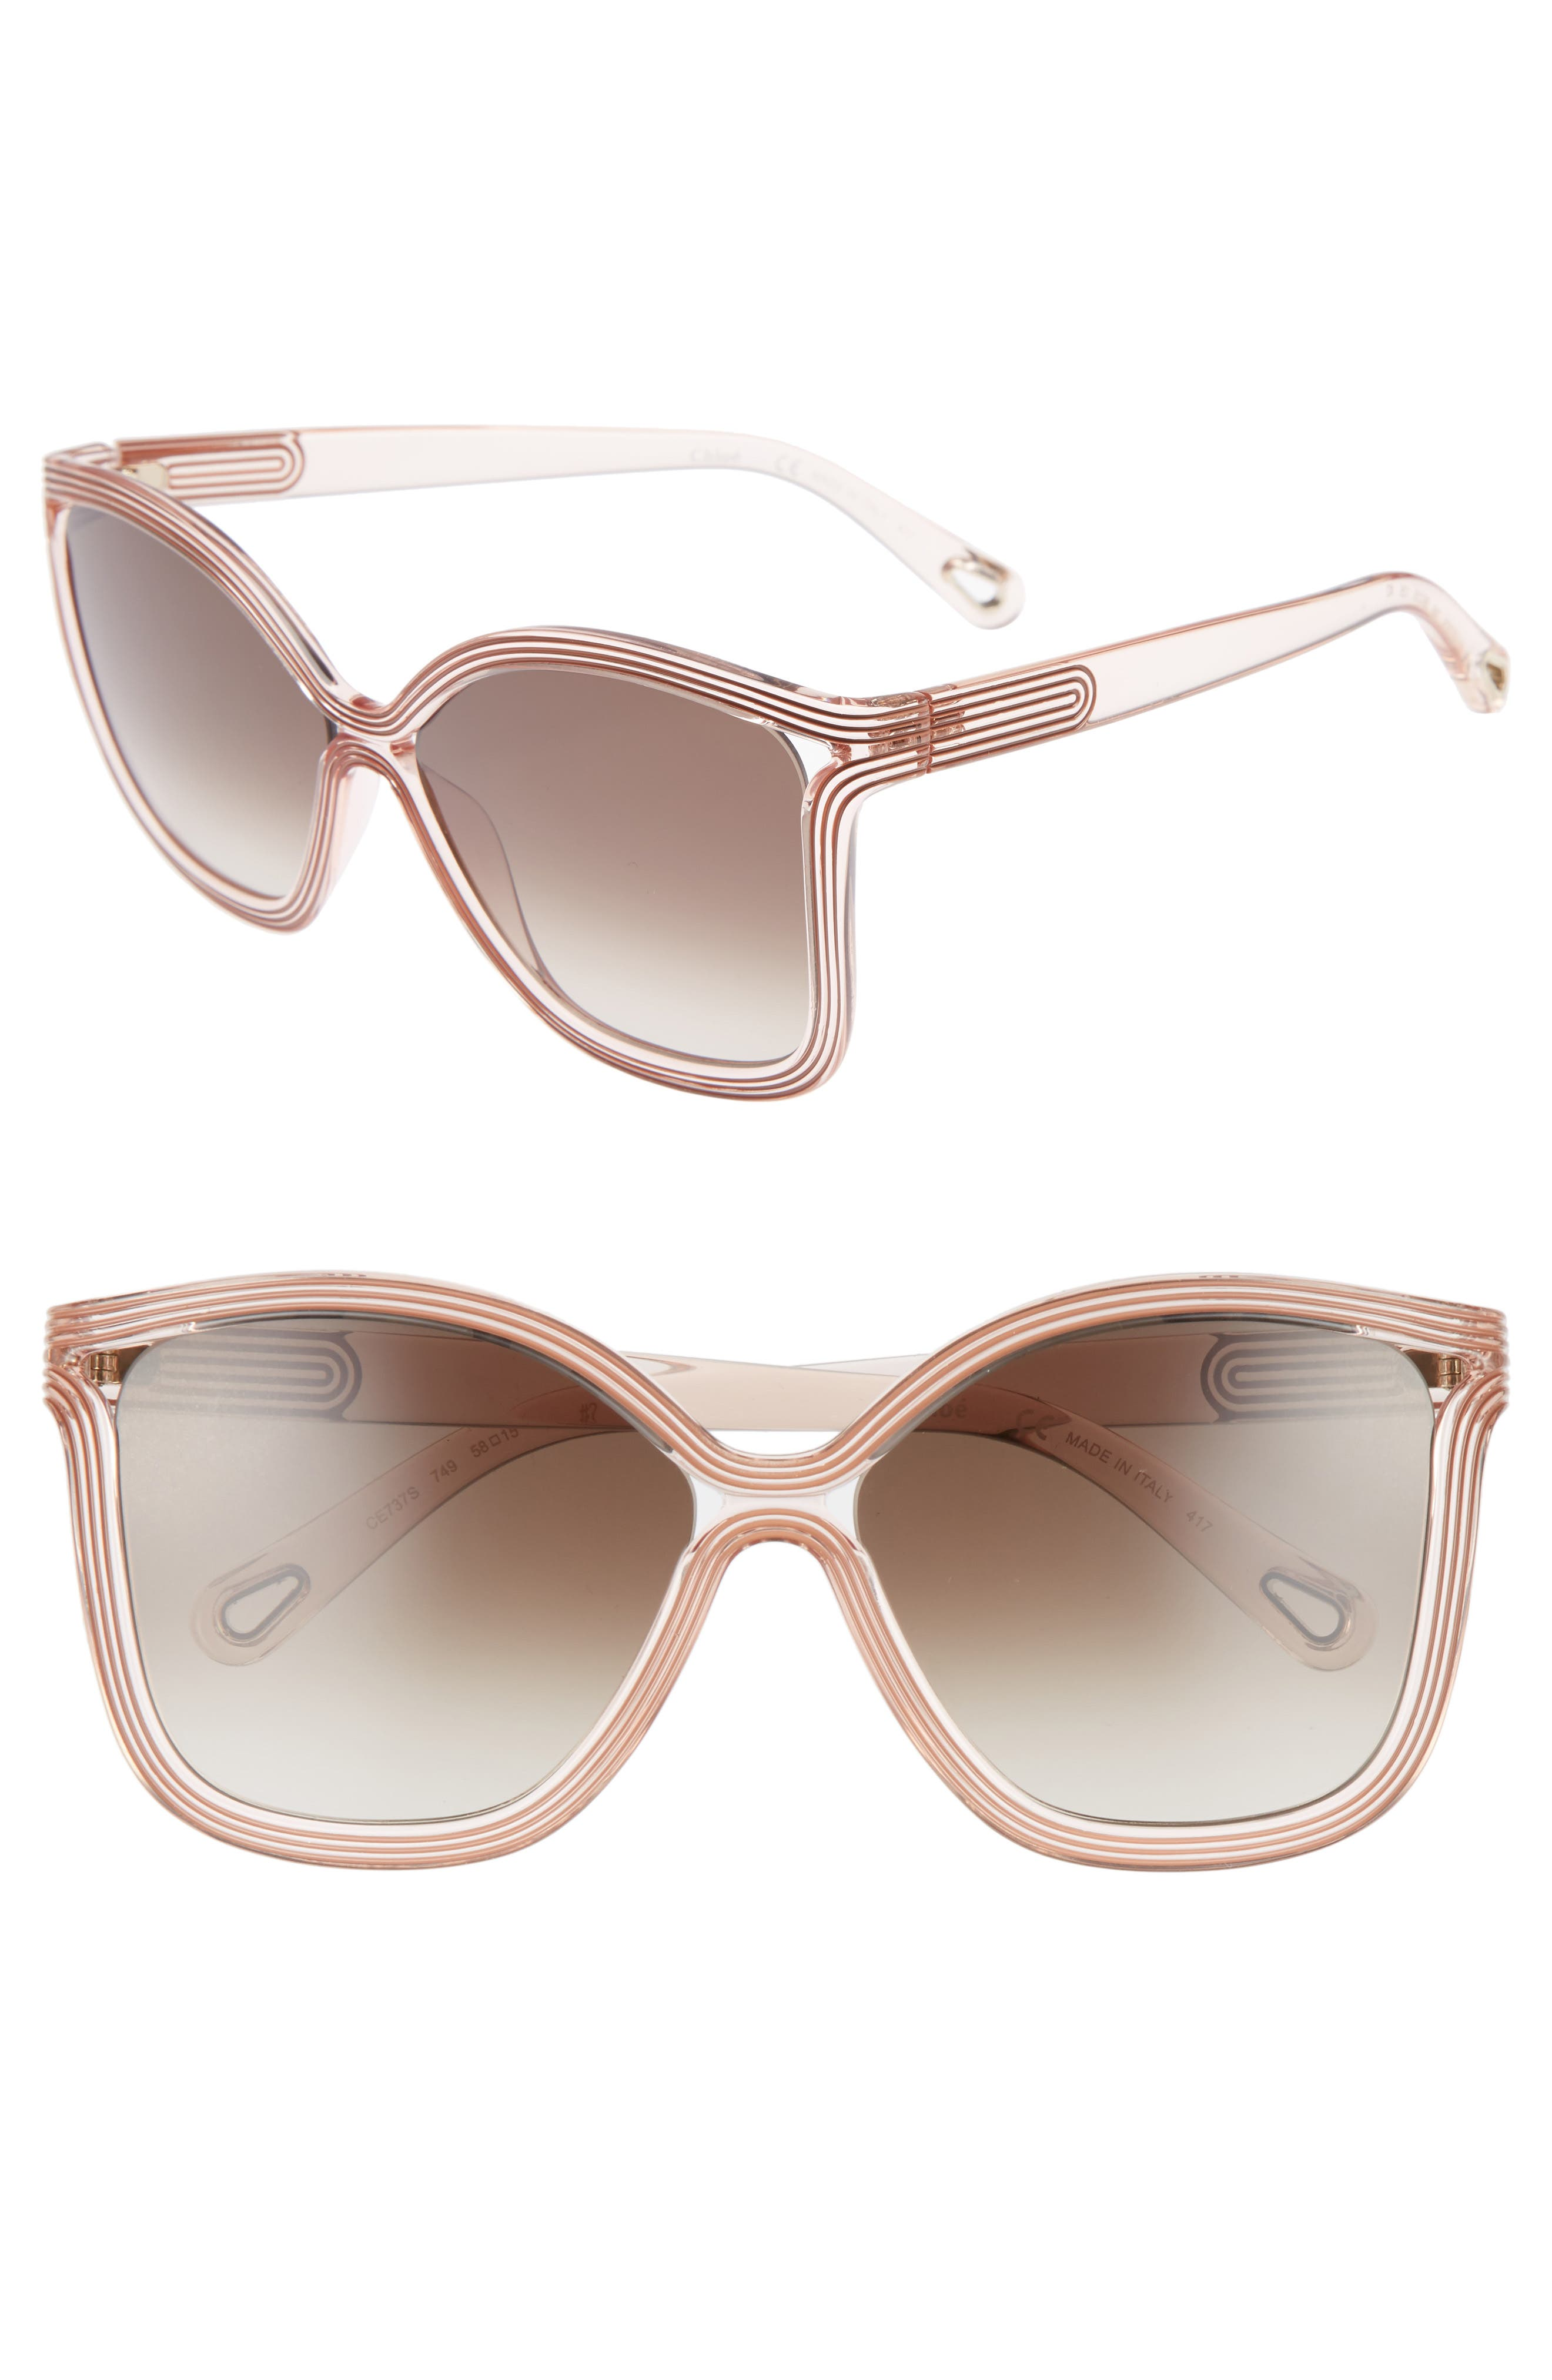 Chloé Grooves 58mm Rectangular Sunglasses